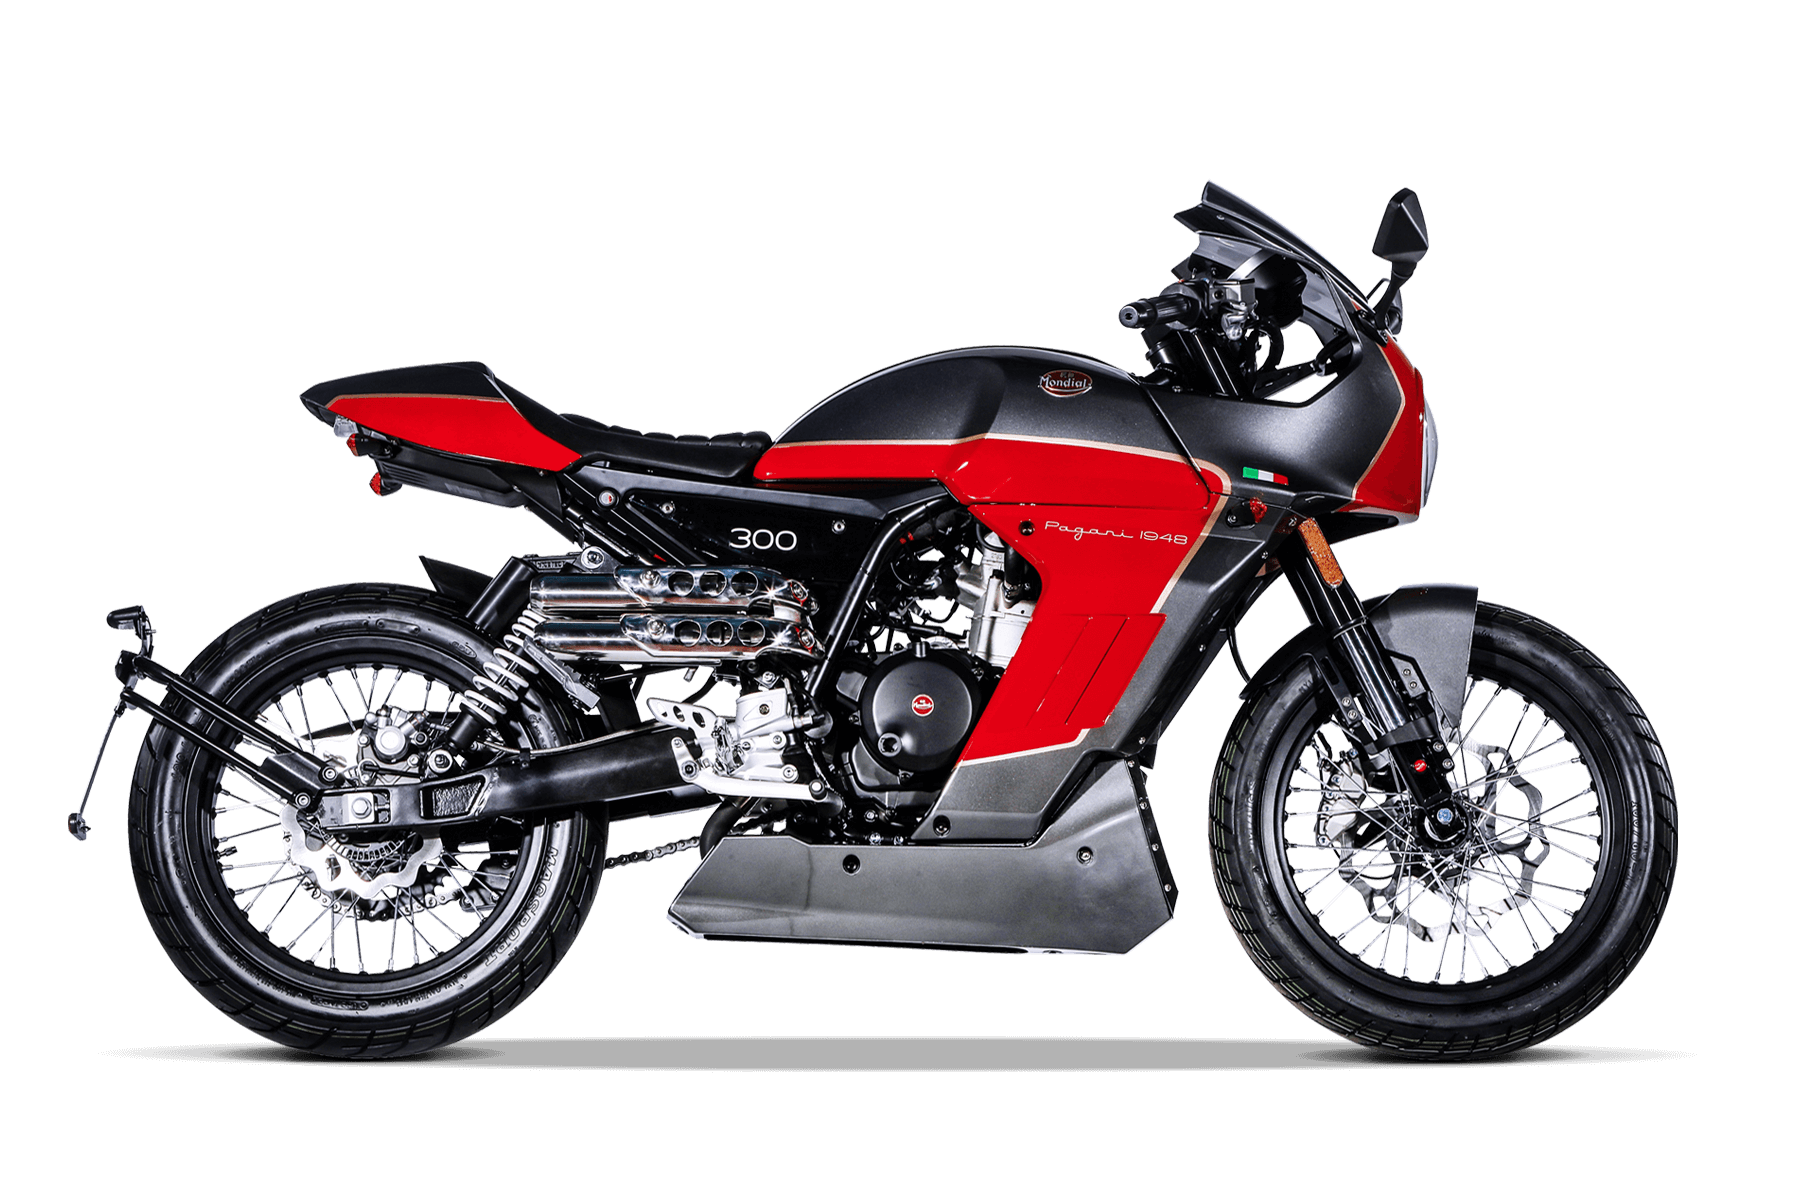 Mondial_Sport_Classic_300i_ABS_red_2019_1.png